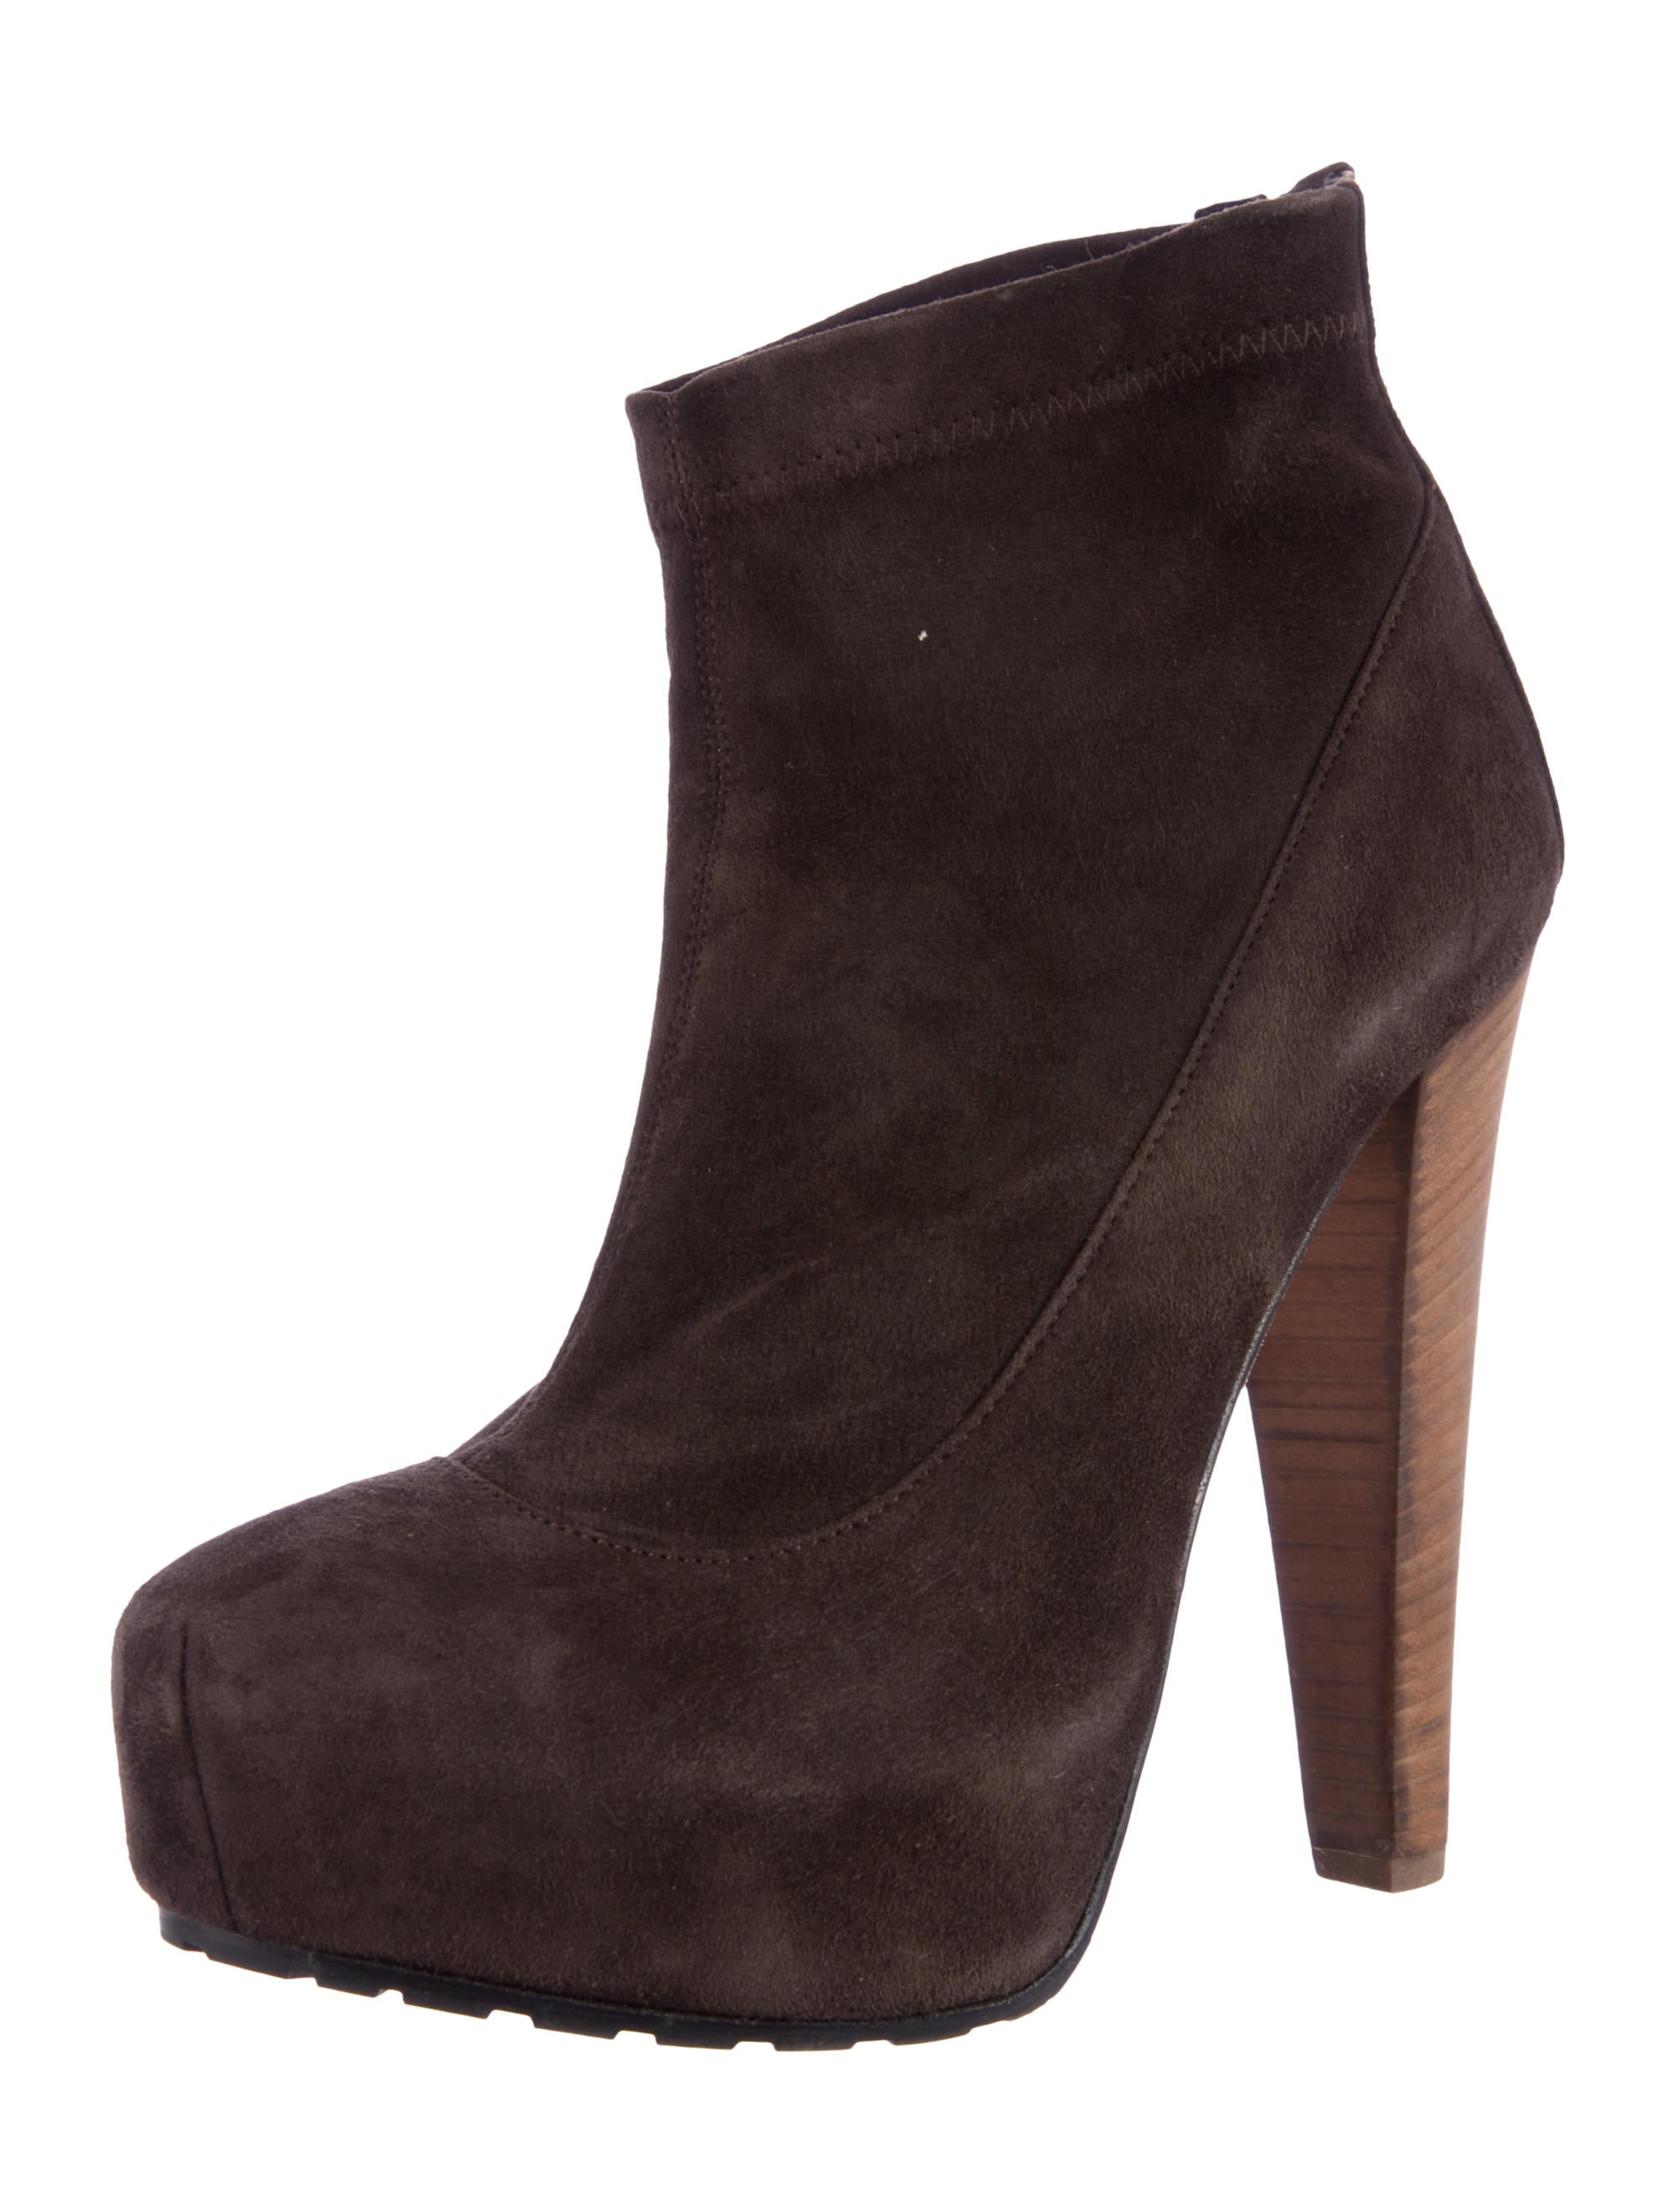 brian atwood suede ankle boots shoes bri22252 the